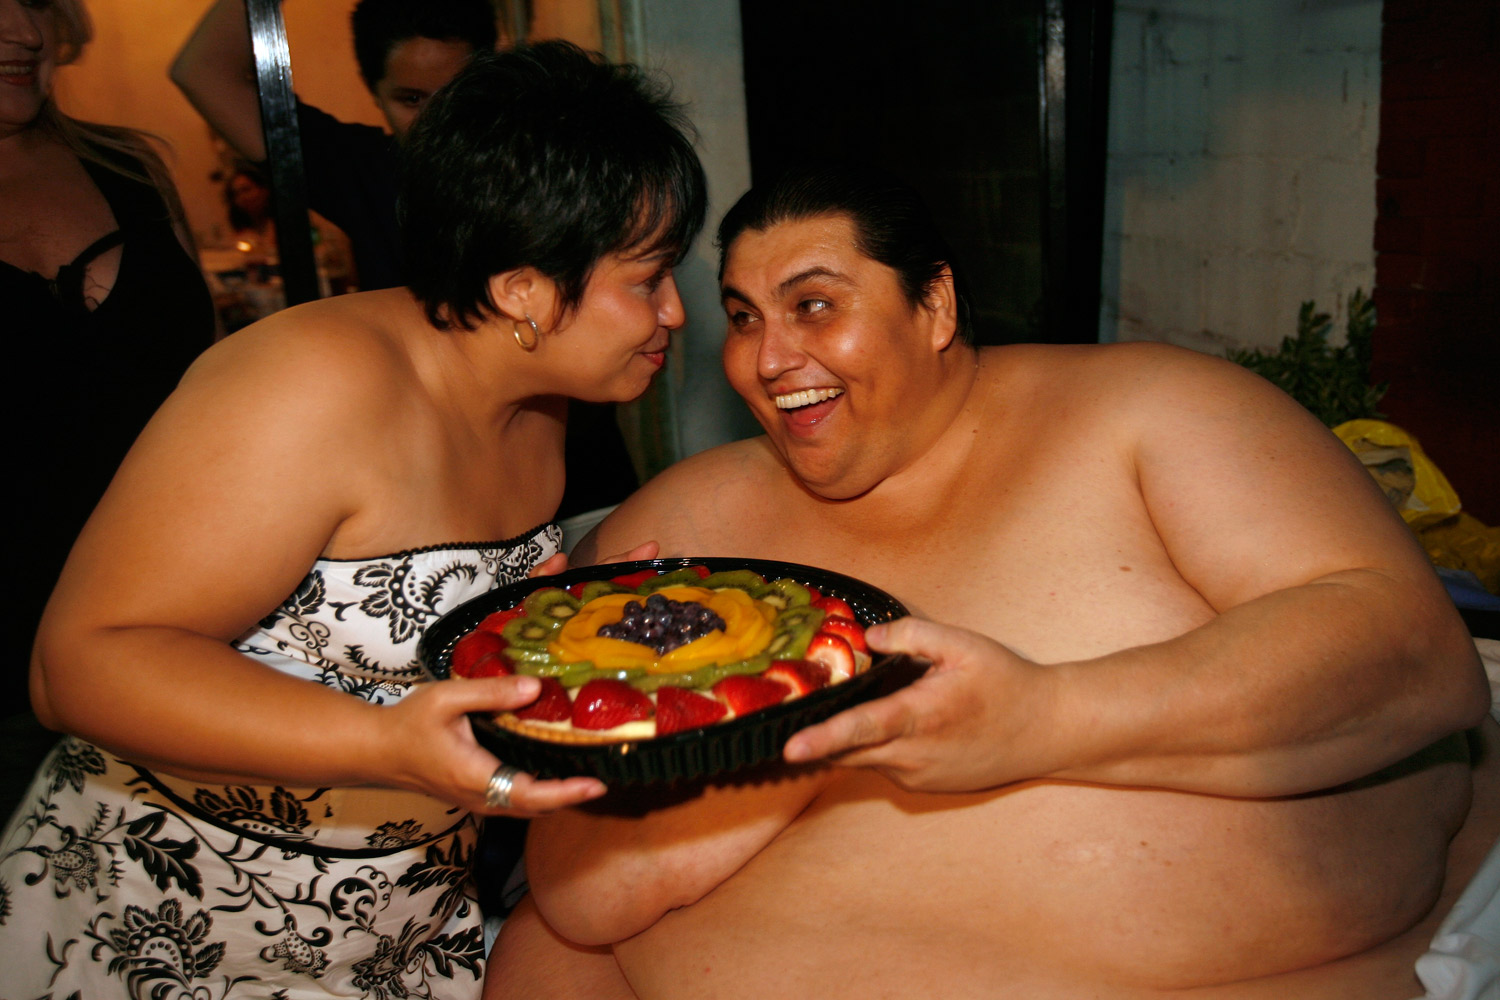 Manuel Uribe jokes as he holds a fruit cake with his girlfriend Claudia Solis outside his house in the suburb of San Nicolas de los Garza in the northern city of Monterrey, Mexico, June 11, 2008.